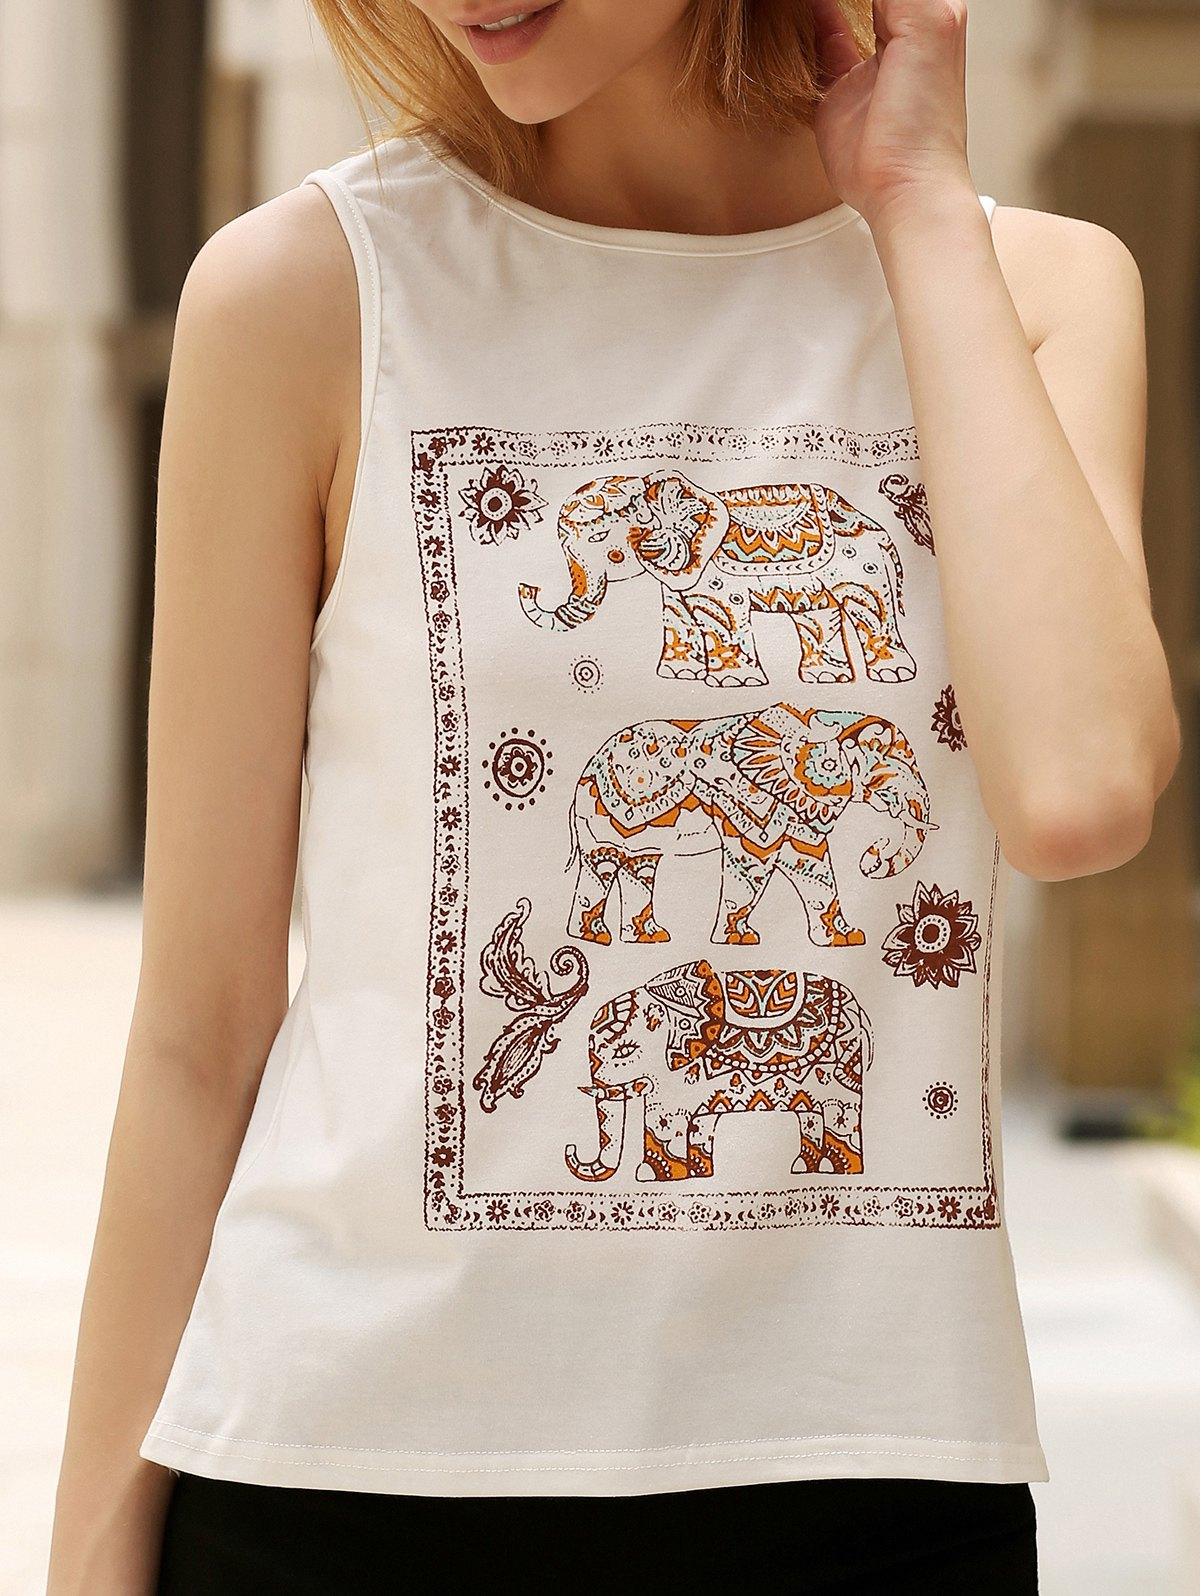 Casual Women's Scoop Neck Ethnic Print Tank Top - WHITE S